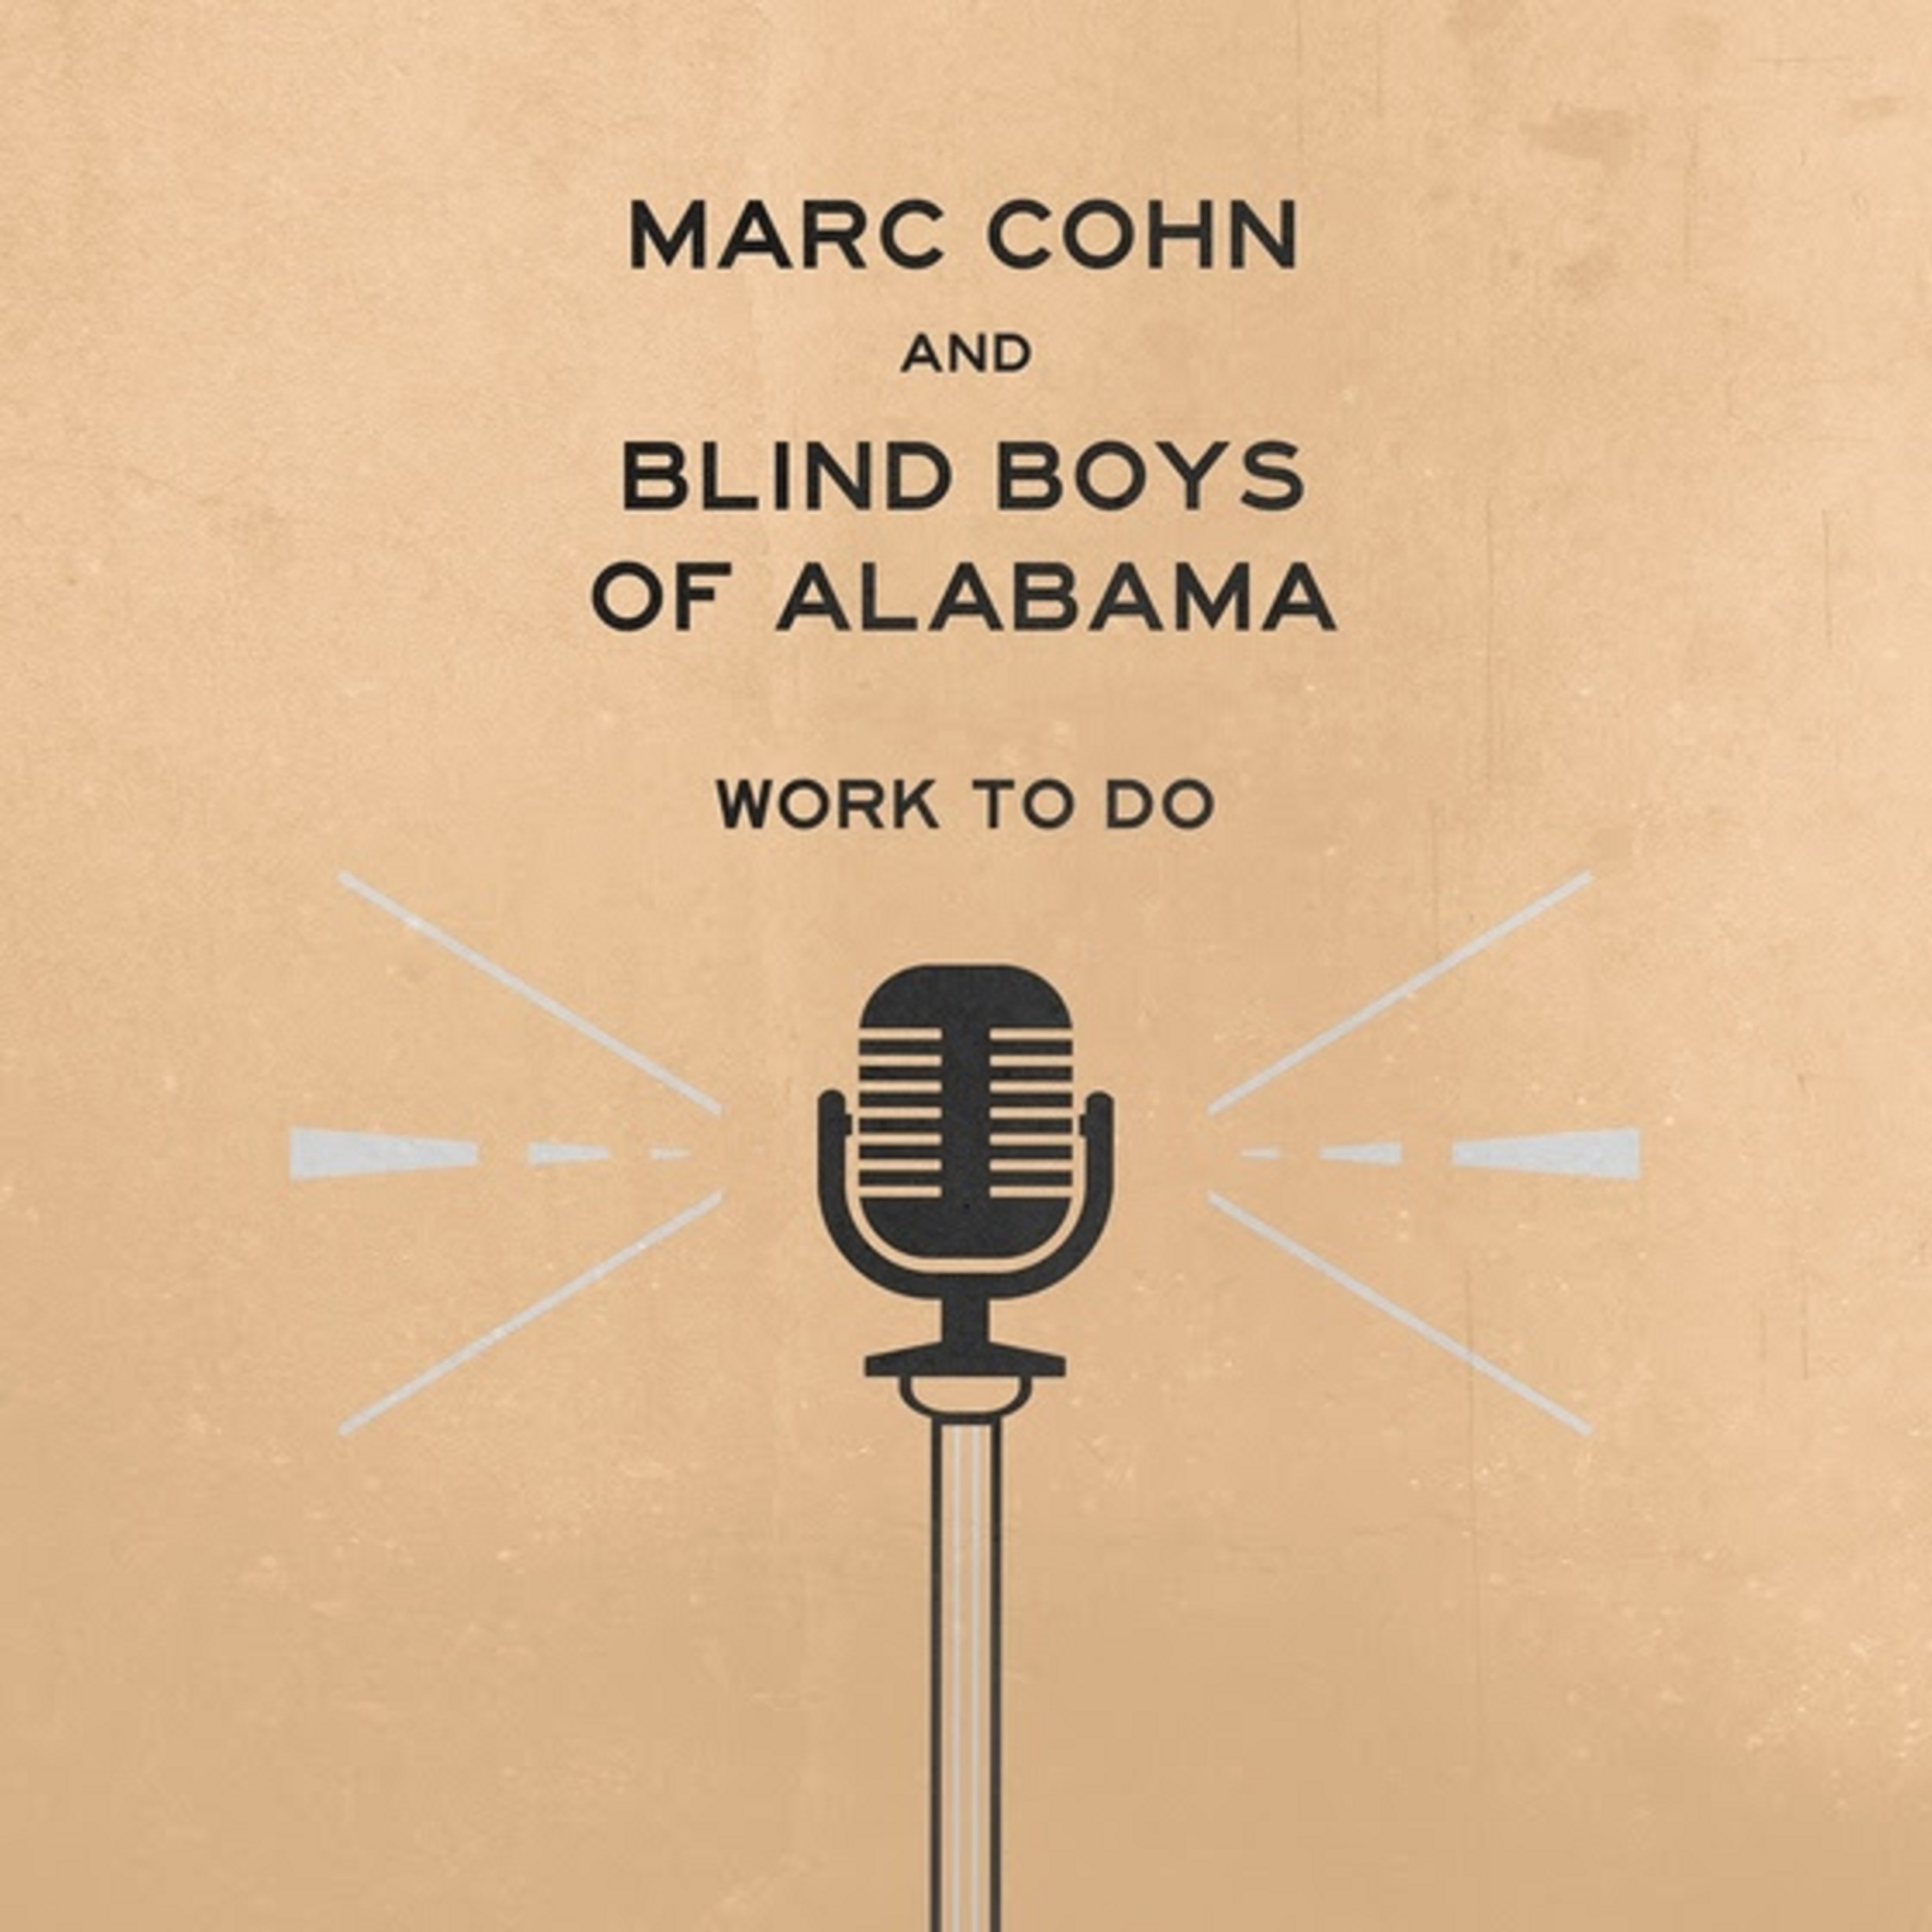 Marc Cohn & Blind Boys Of Alabama Collaborate On WORK TO DO - Due Out August 9th